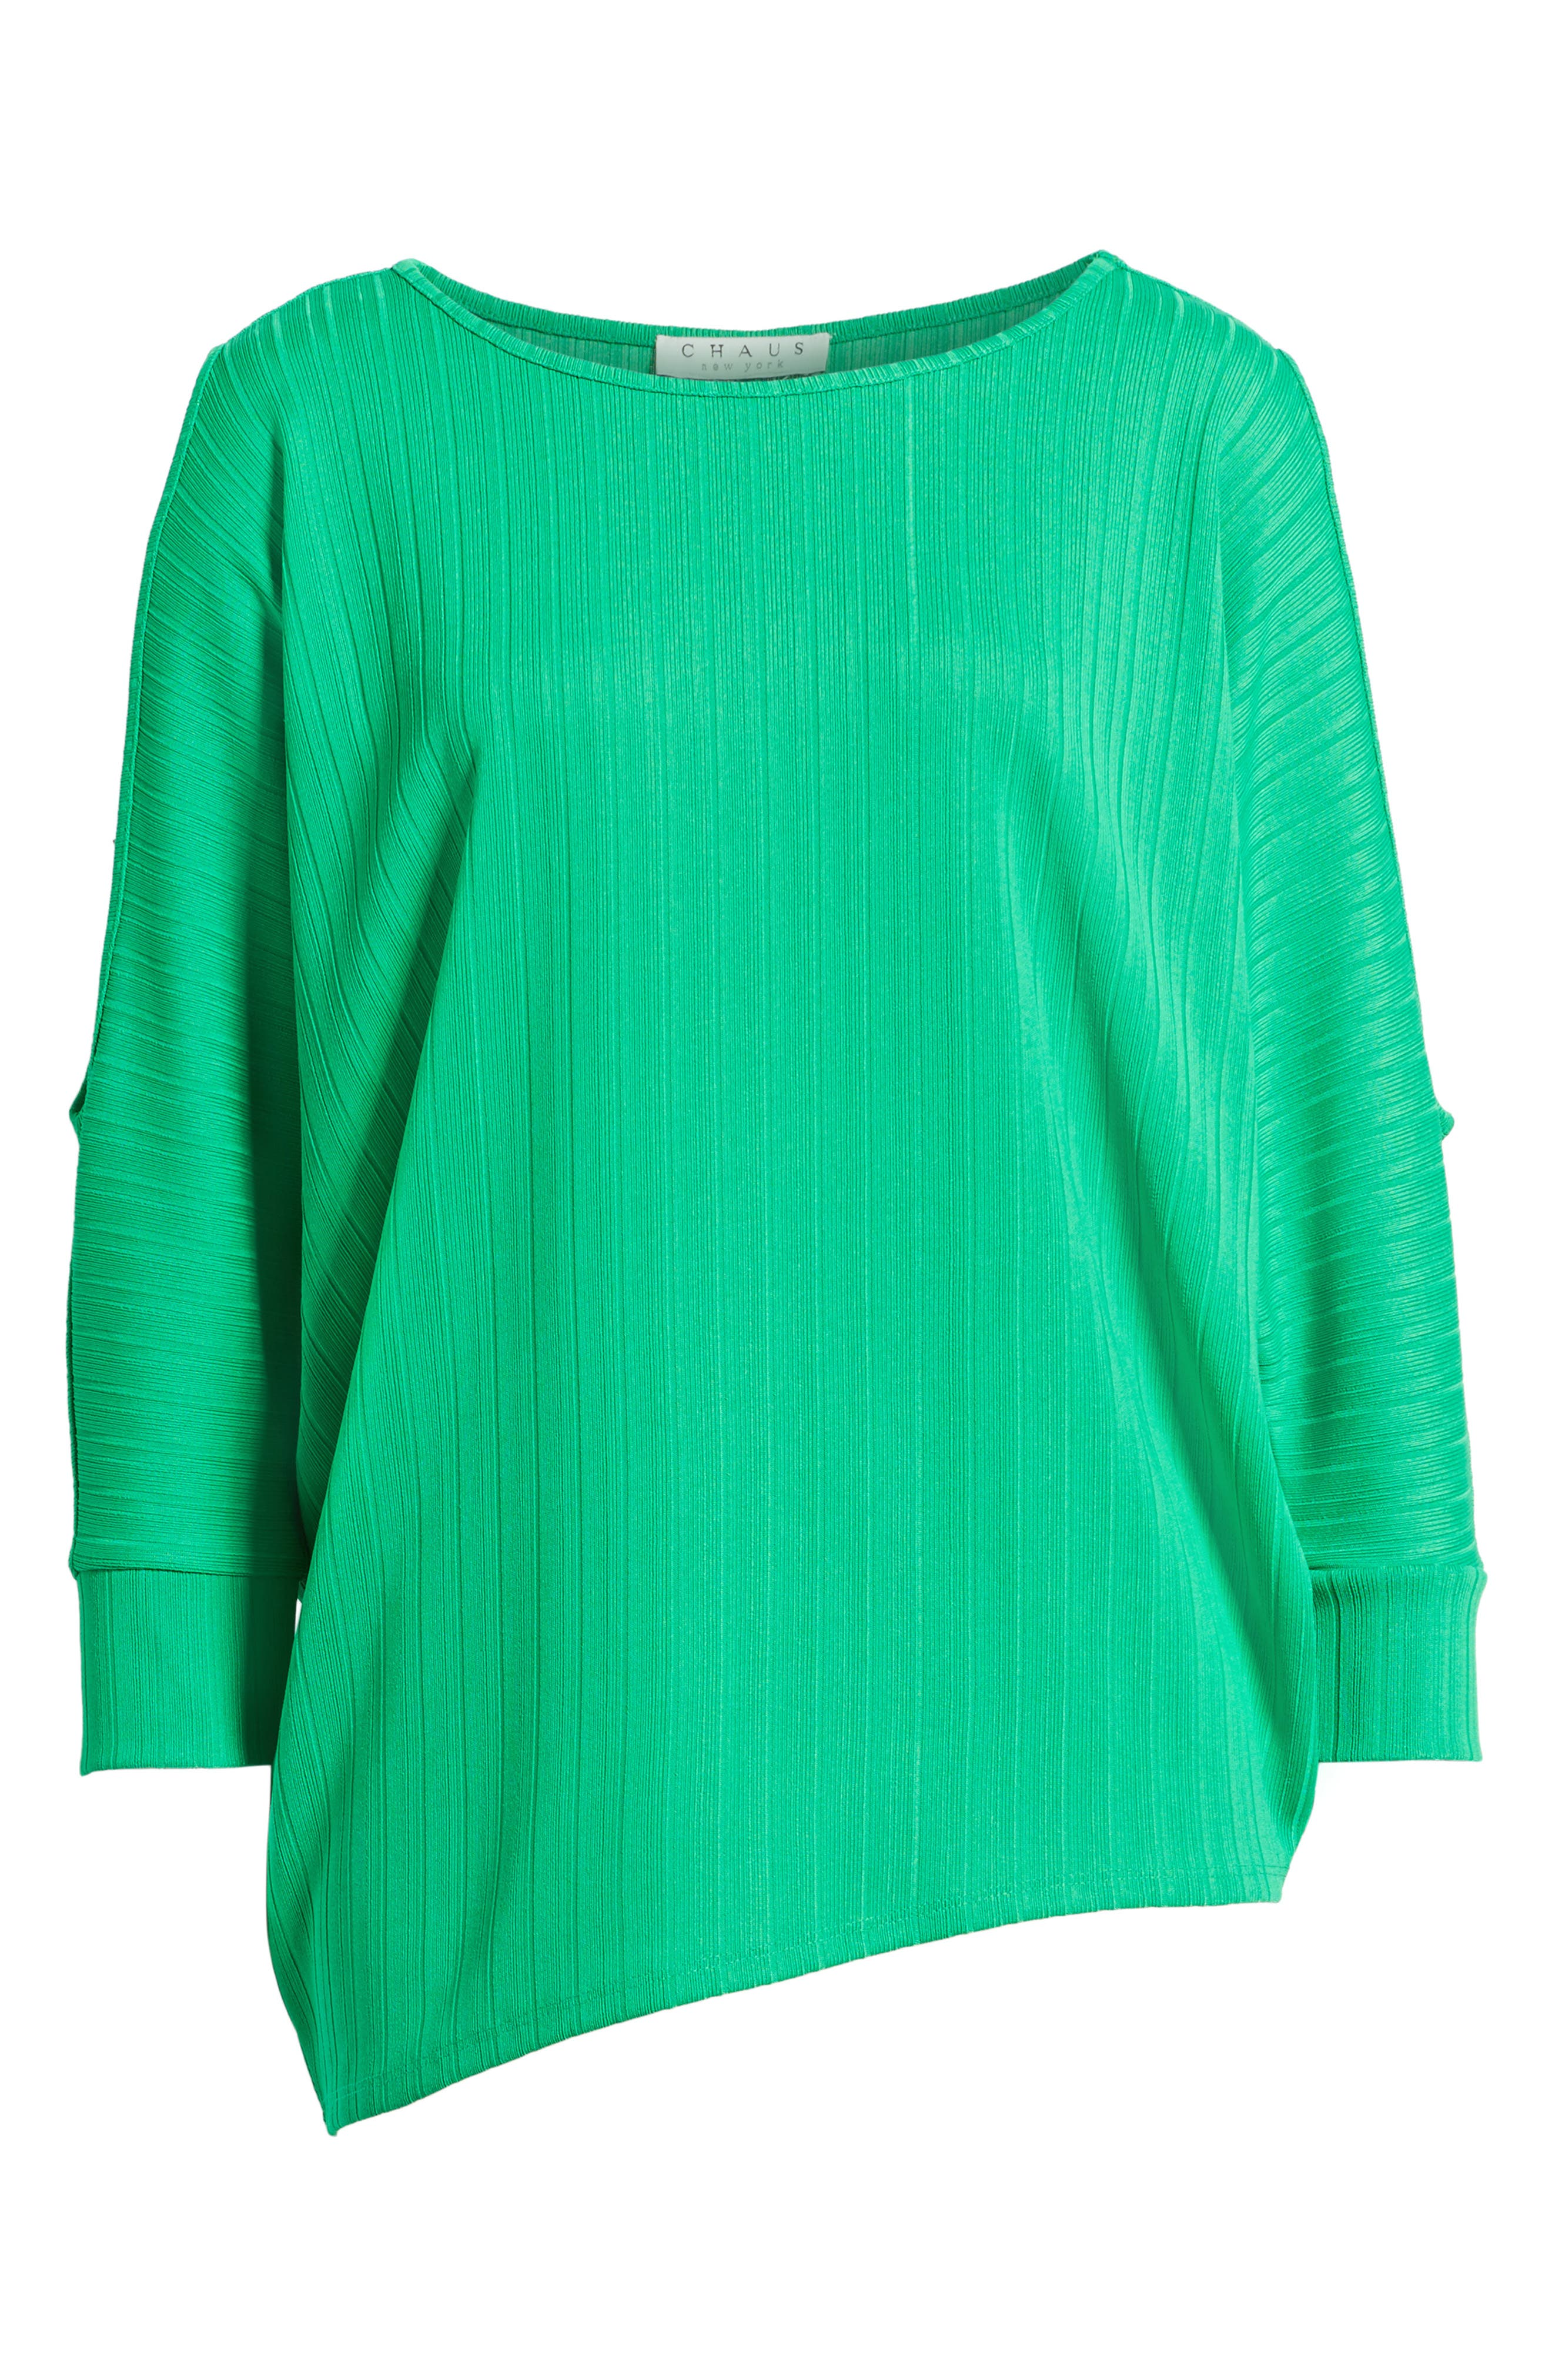 Ribbed Knit Cold Shoulder Top,                             Alternate thumbnail 6, color,                             Bright Amazon